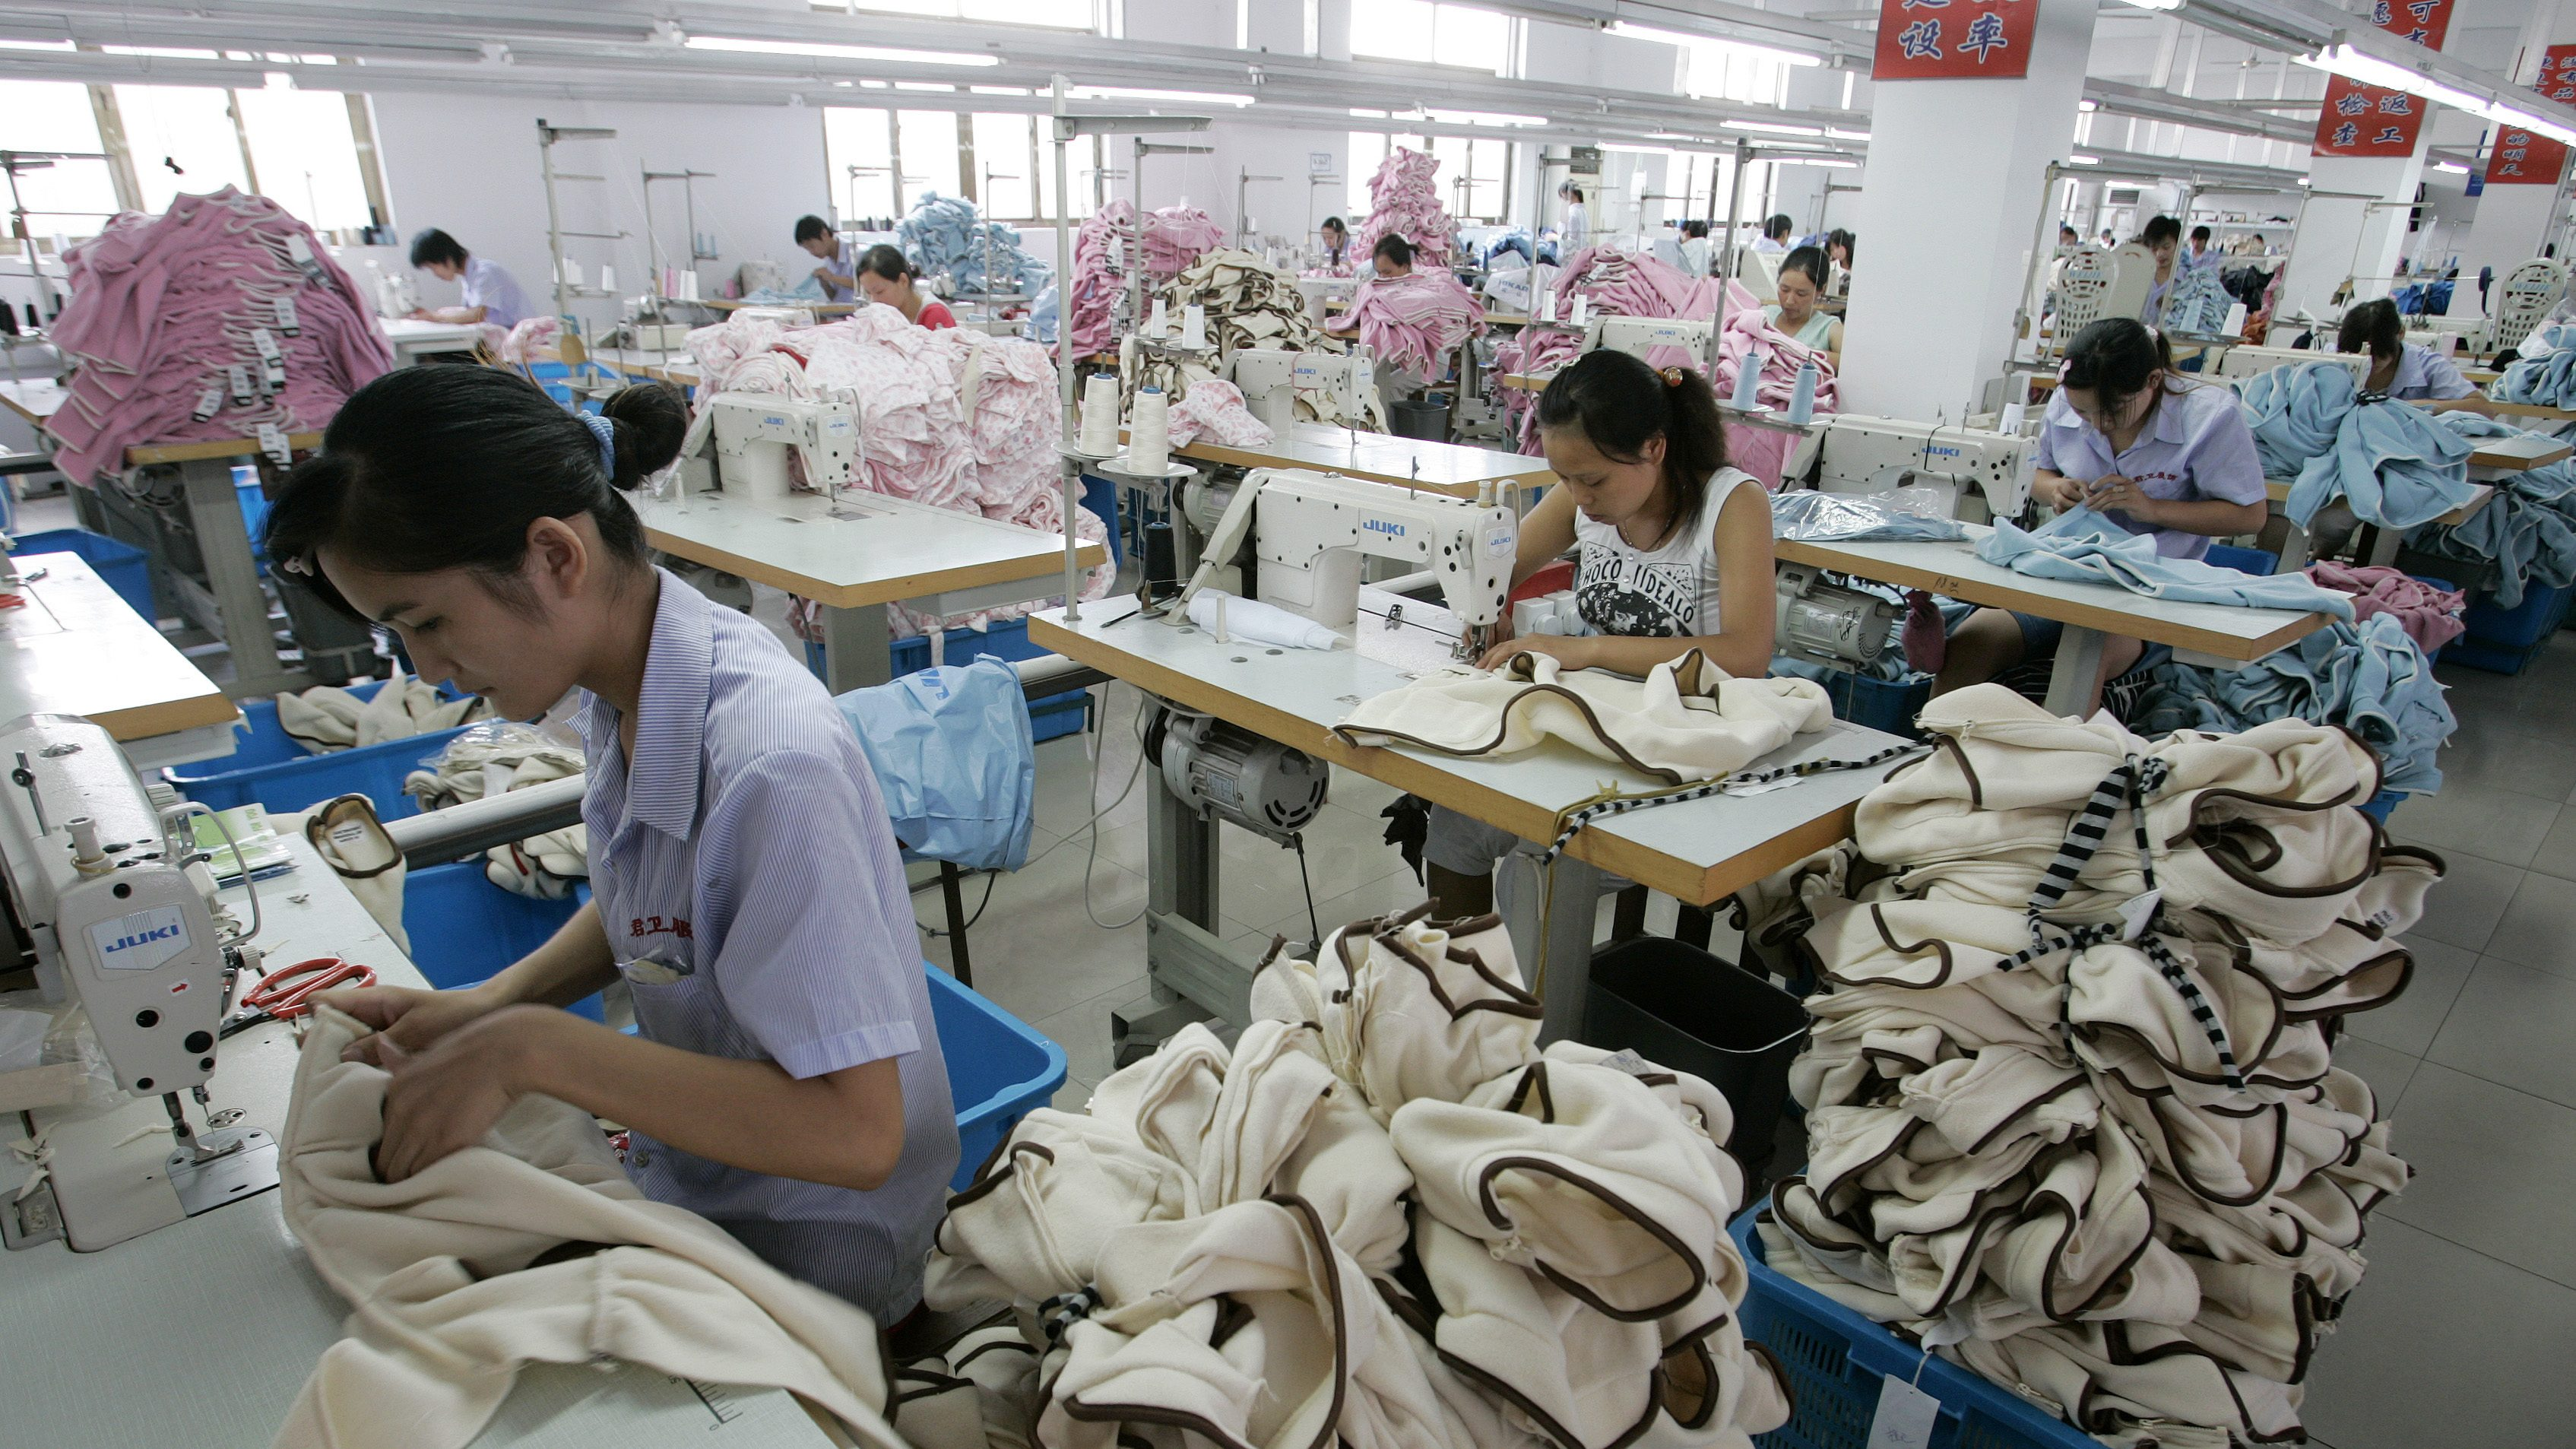 Labourers work on garments for export at the production line of a garment factory in Shanghai